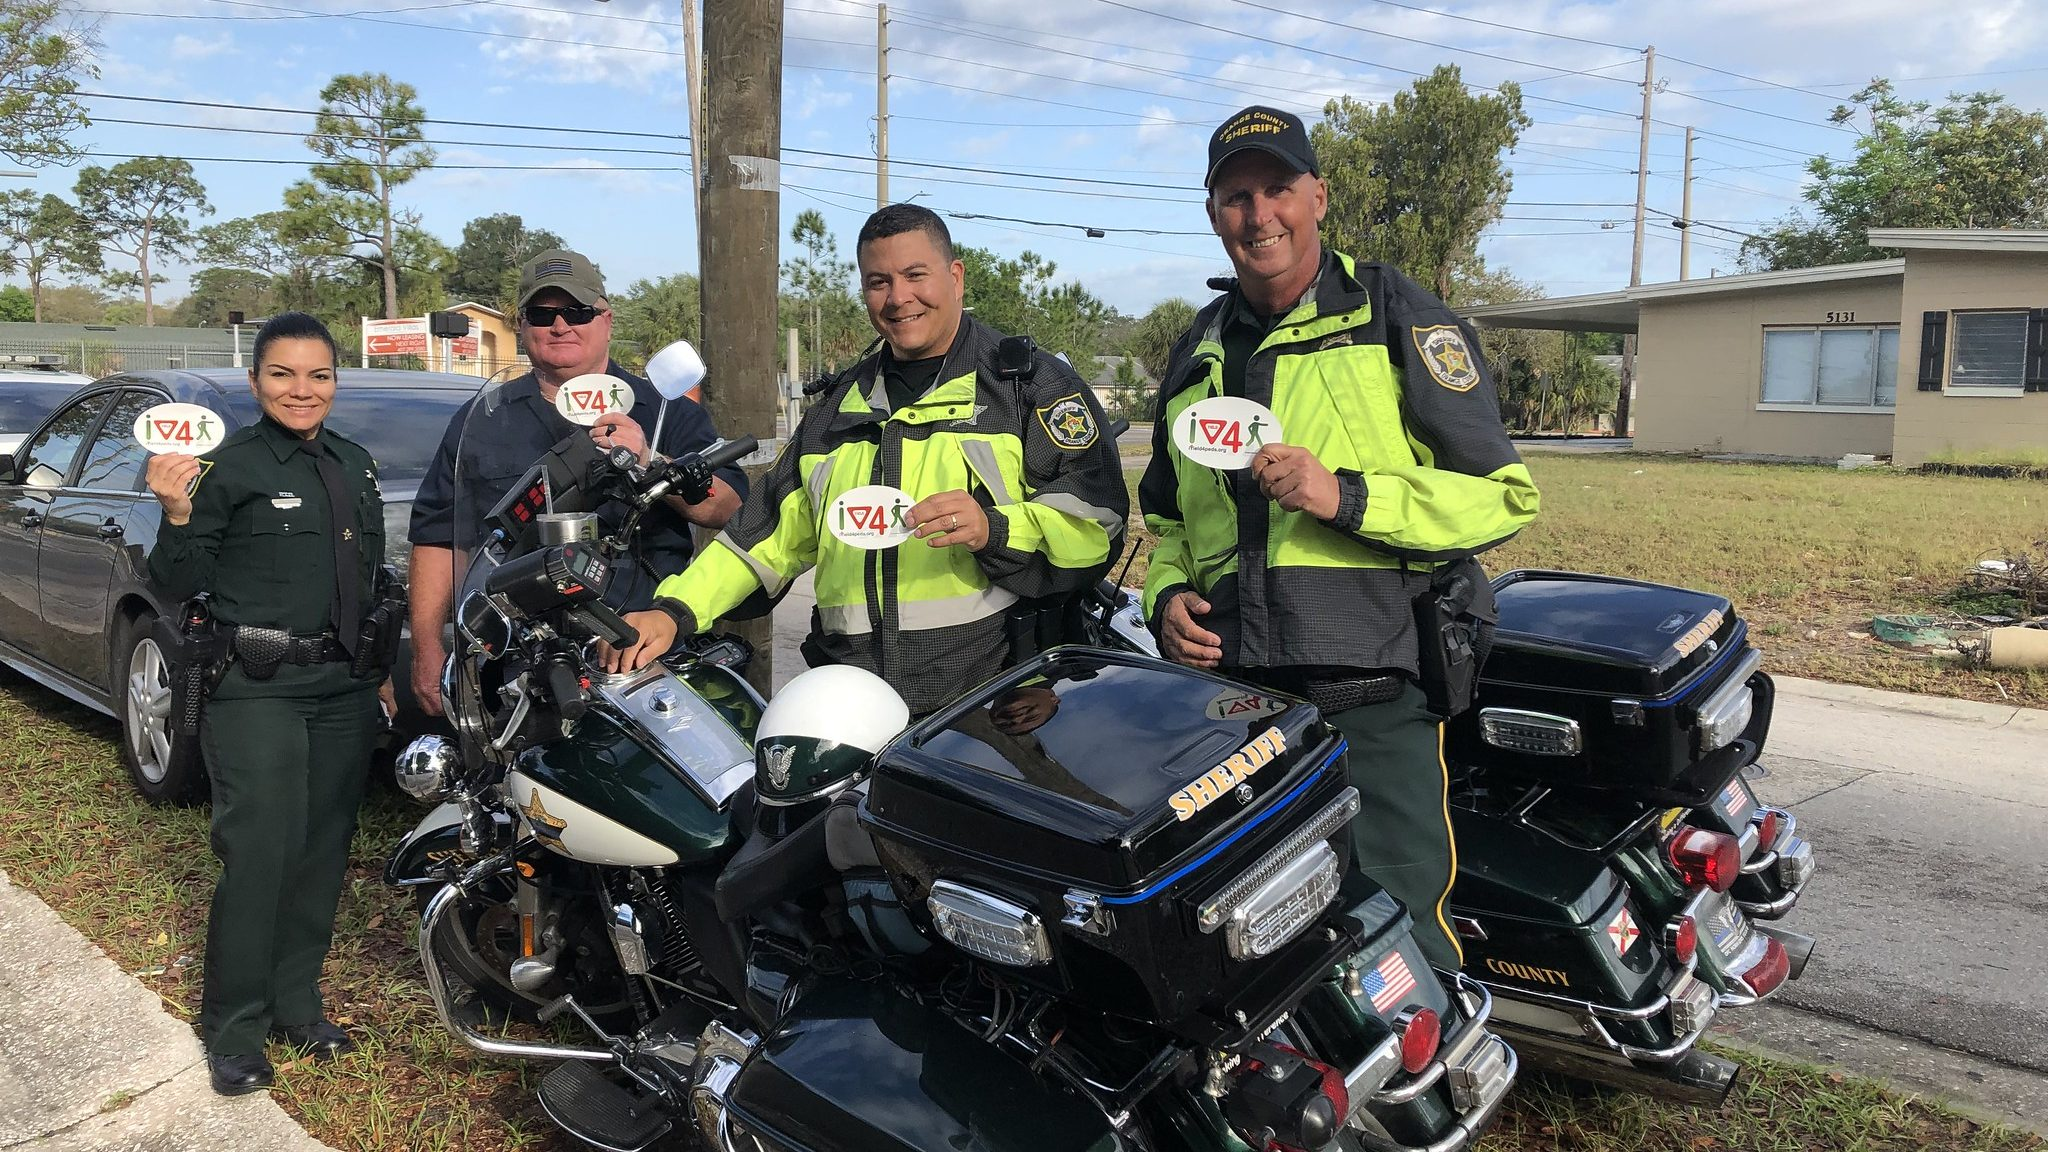 Media Alert: Operation BFF In Orlando And Orange County On 9/18/19